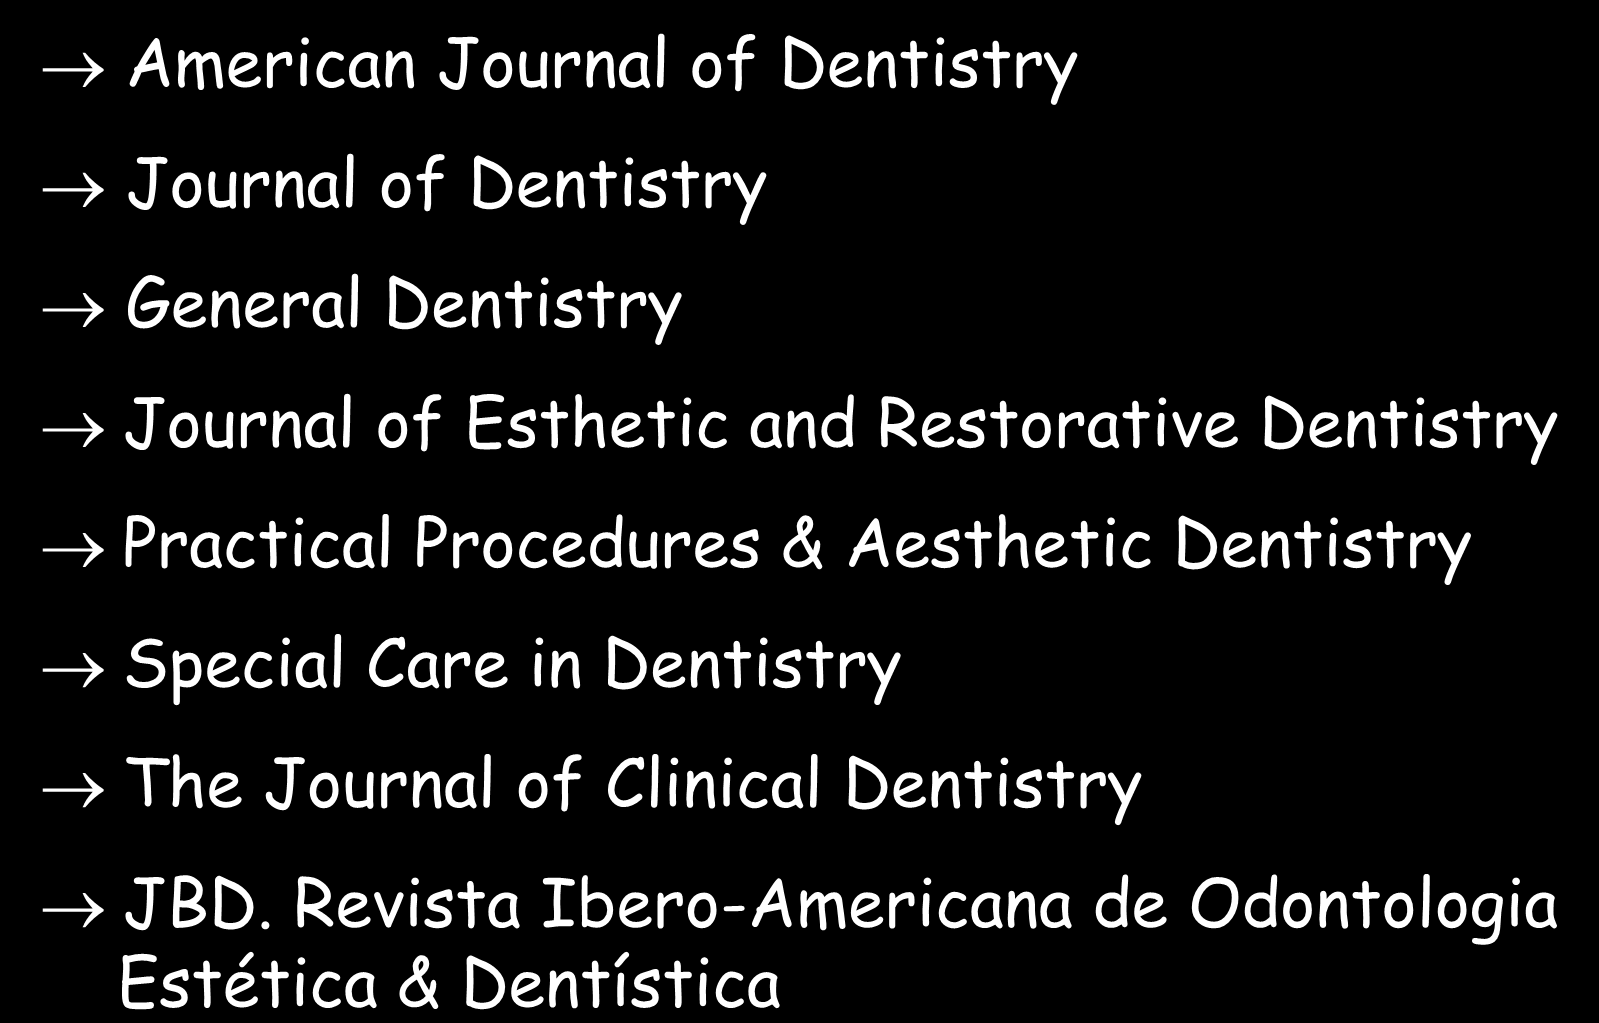 PERIÓDICOS - SUGESTÕES DENTÍSTICA American Journal of Dentistry Journal of Dentistry General Dentistry Journal of Esthetic and Restorative Dentistry Practical